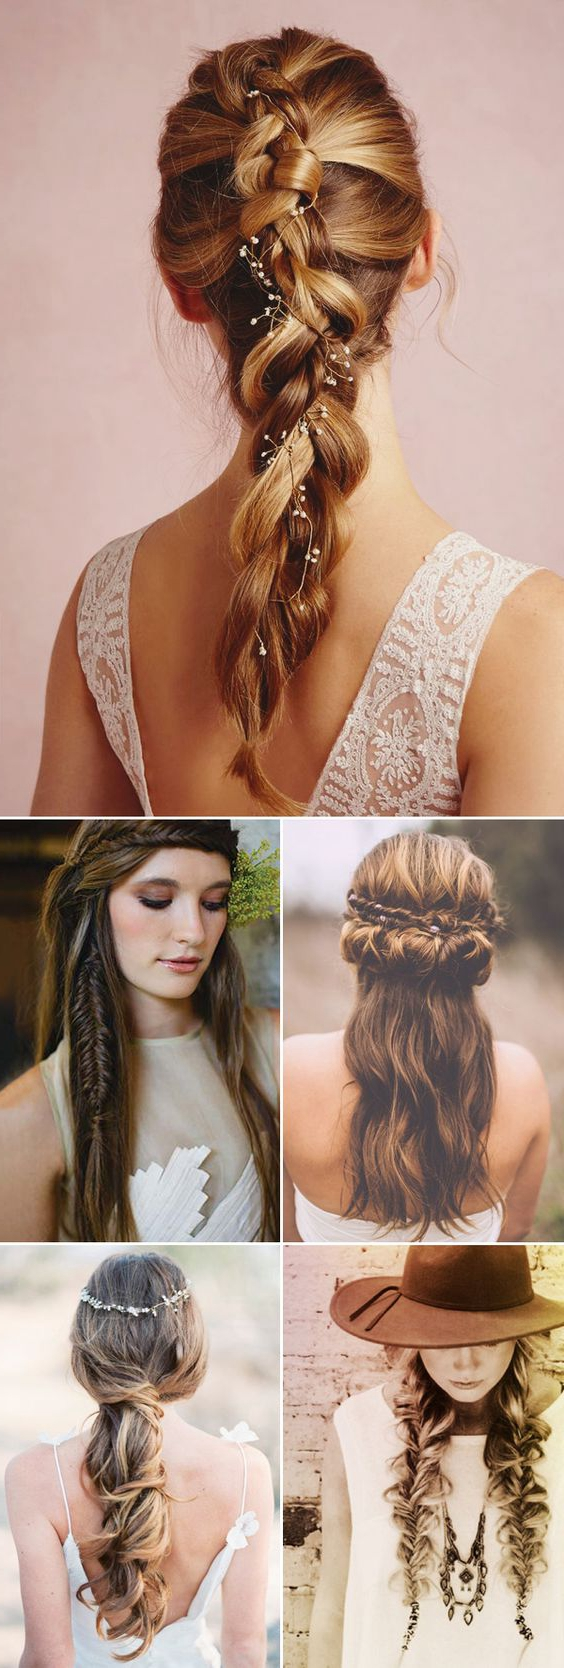 Natural Bohemian Braided Hairstyles